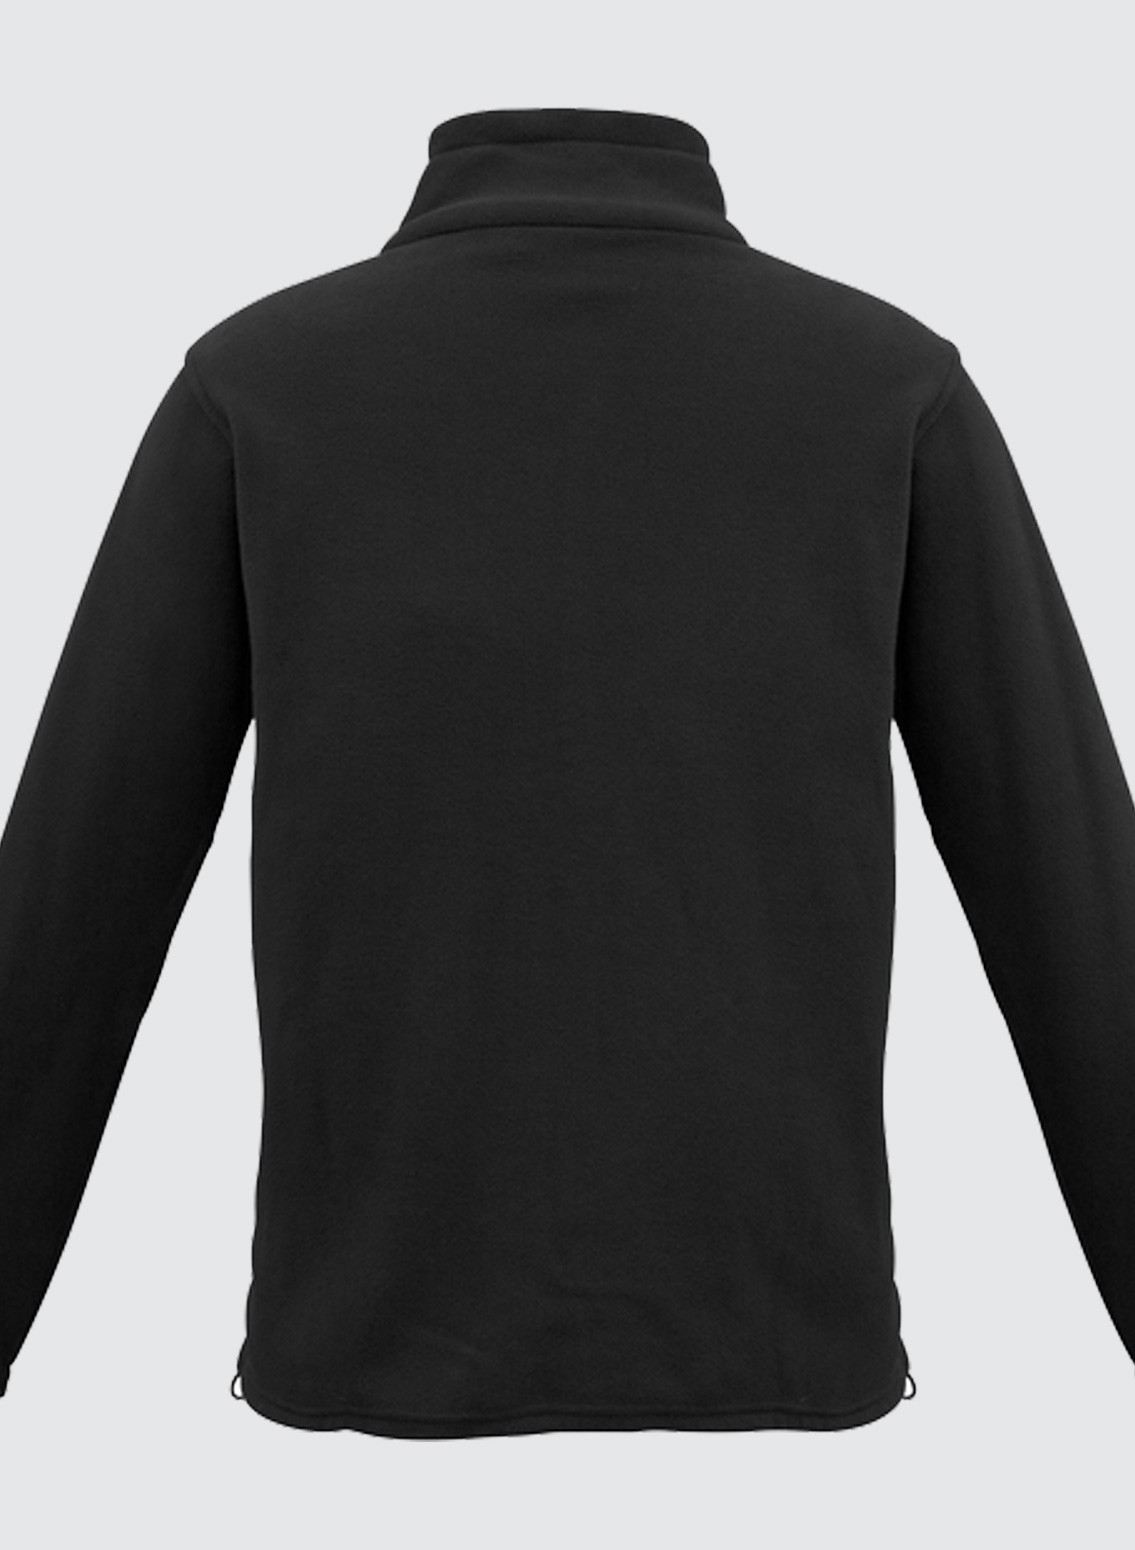 Choose from black fleece jackets in an assortment of styles, such as zip-front jackets, half-zip jackets and quarter-zip pullover jackets. Convenient features like drawcord adjustable hems and zippered hand pockets make these black fleece jackets a pleasure to wear.